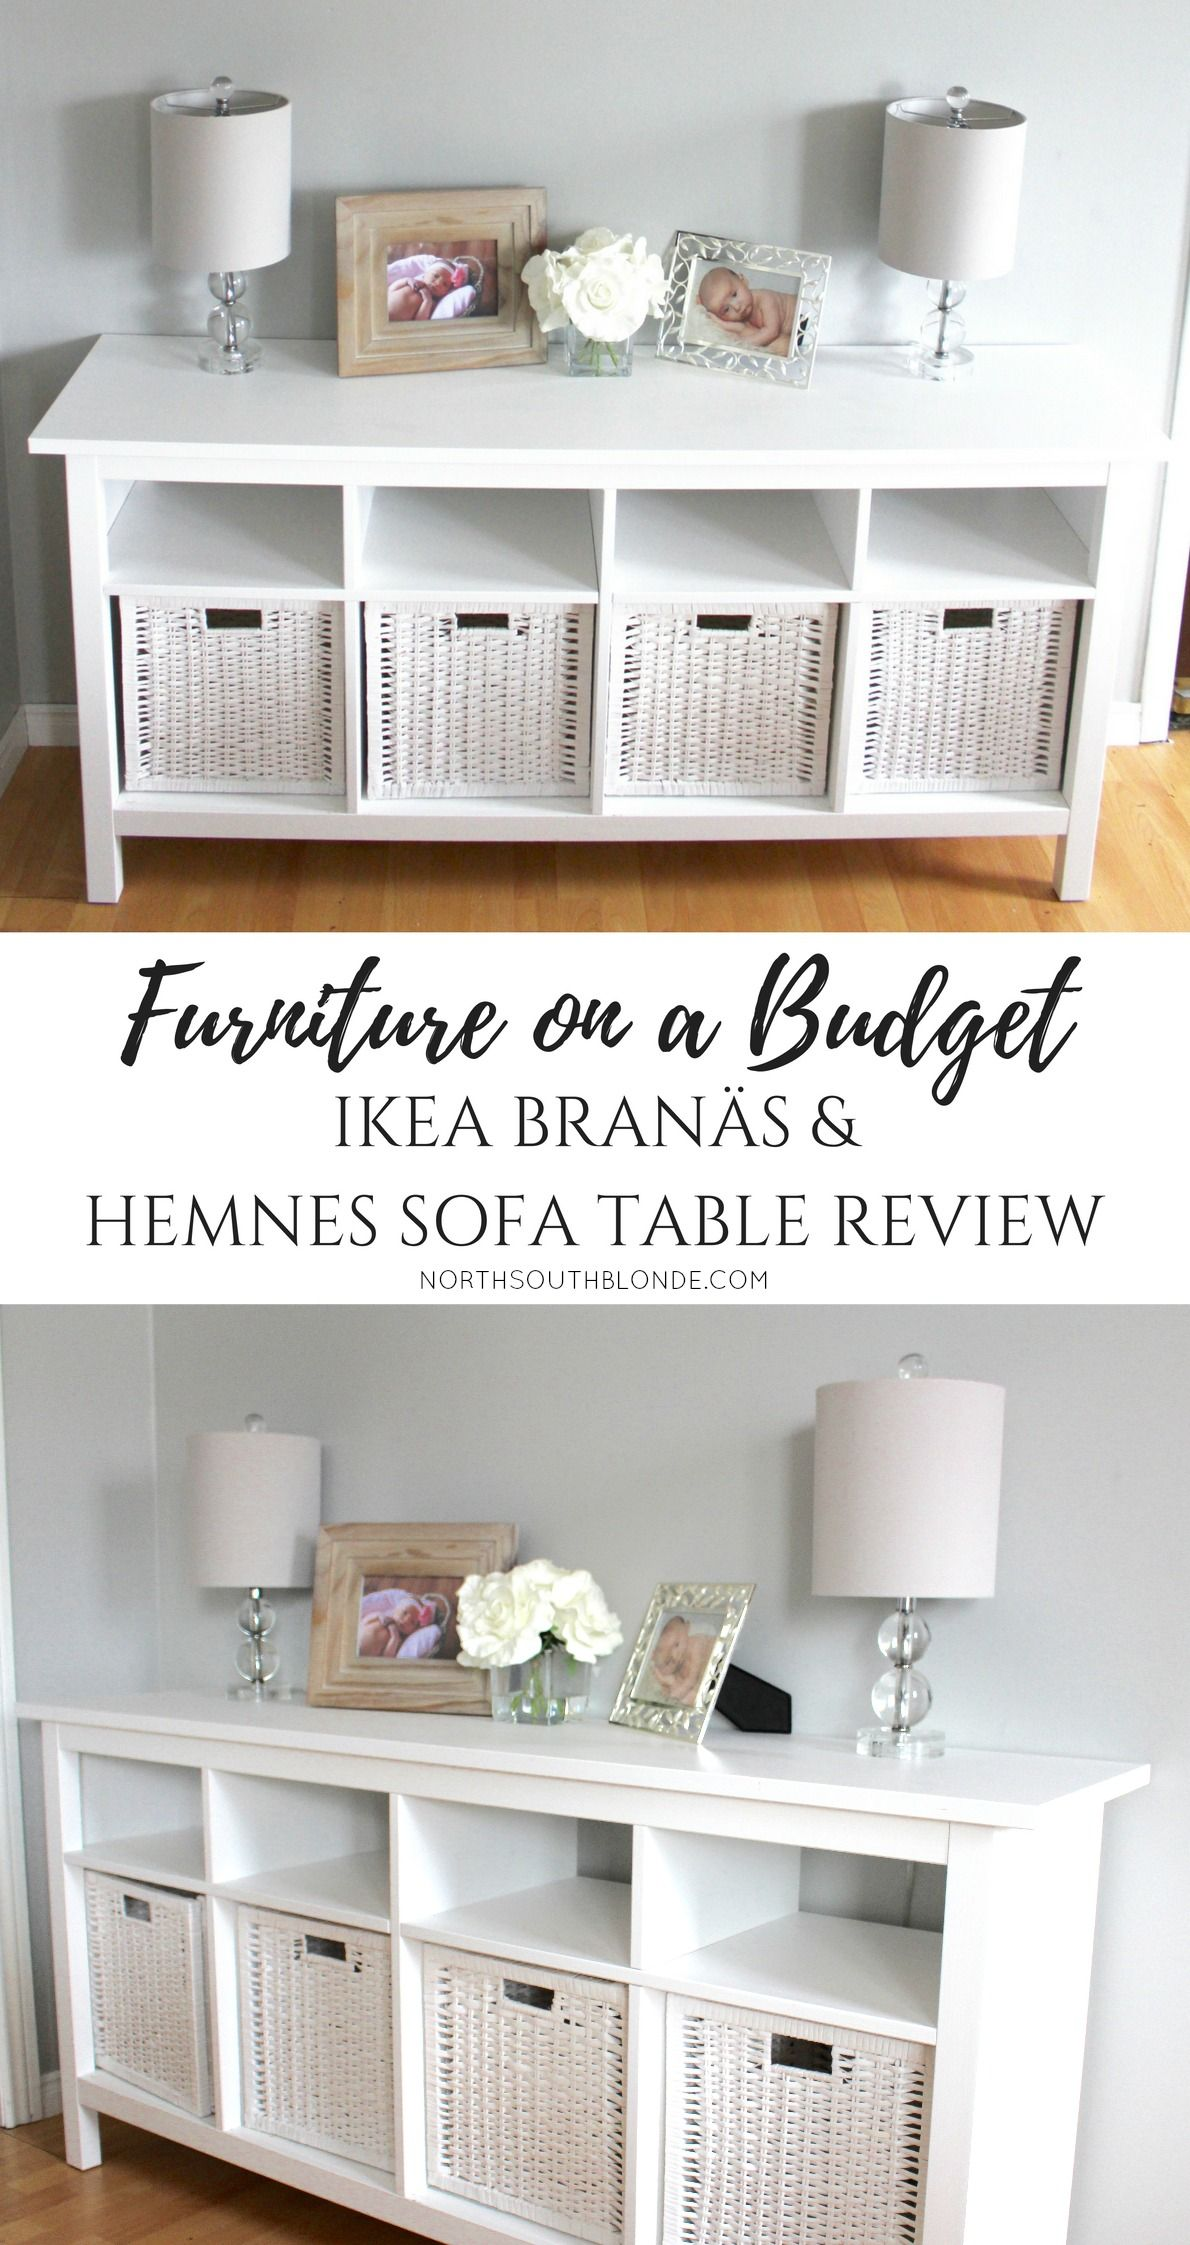 Hemnes Wohnzimmer Ideen Furniture On A Budget Ikea BranÄs And Hemnes Sofa Table